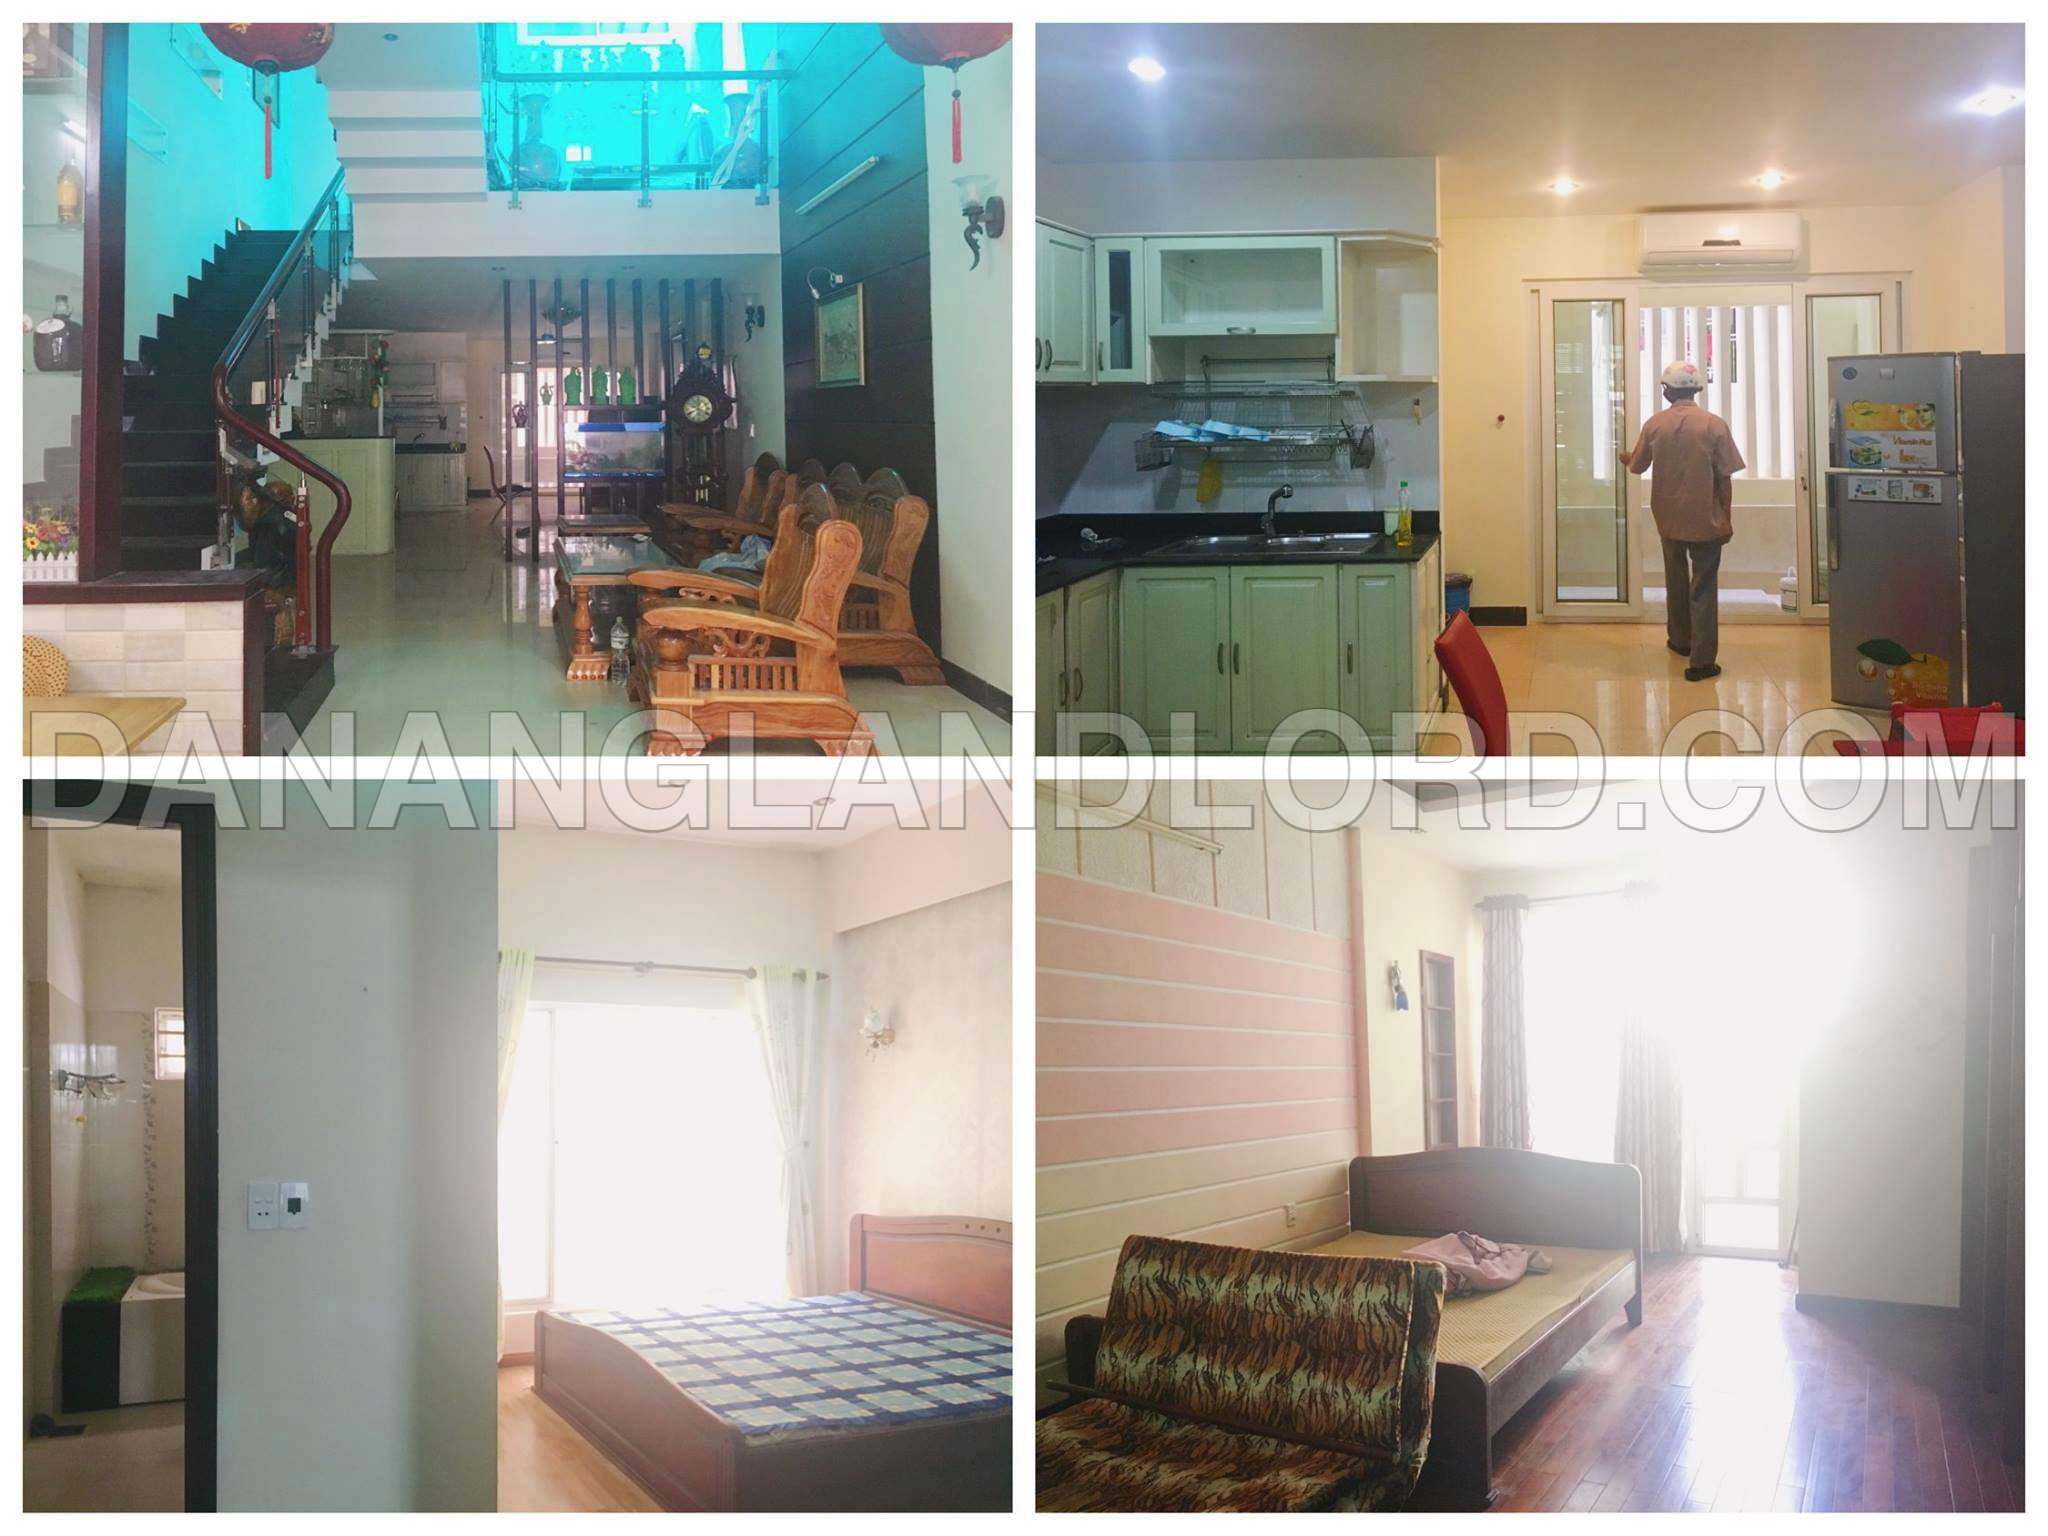 The modern house with 4 bedrooms in Pham Van Dong area